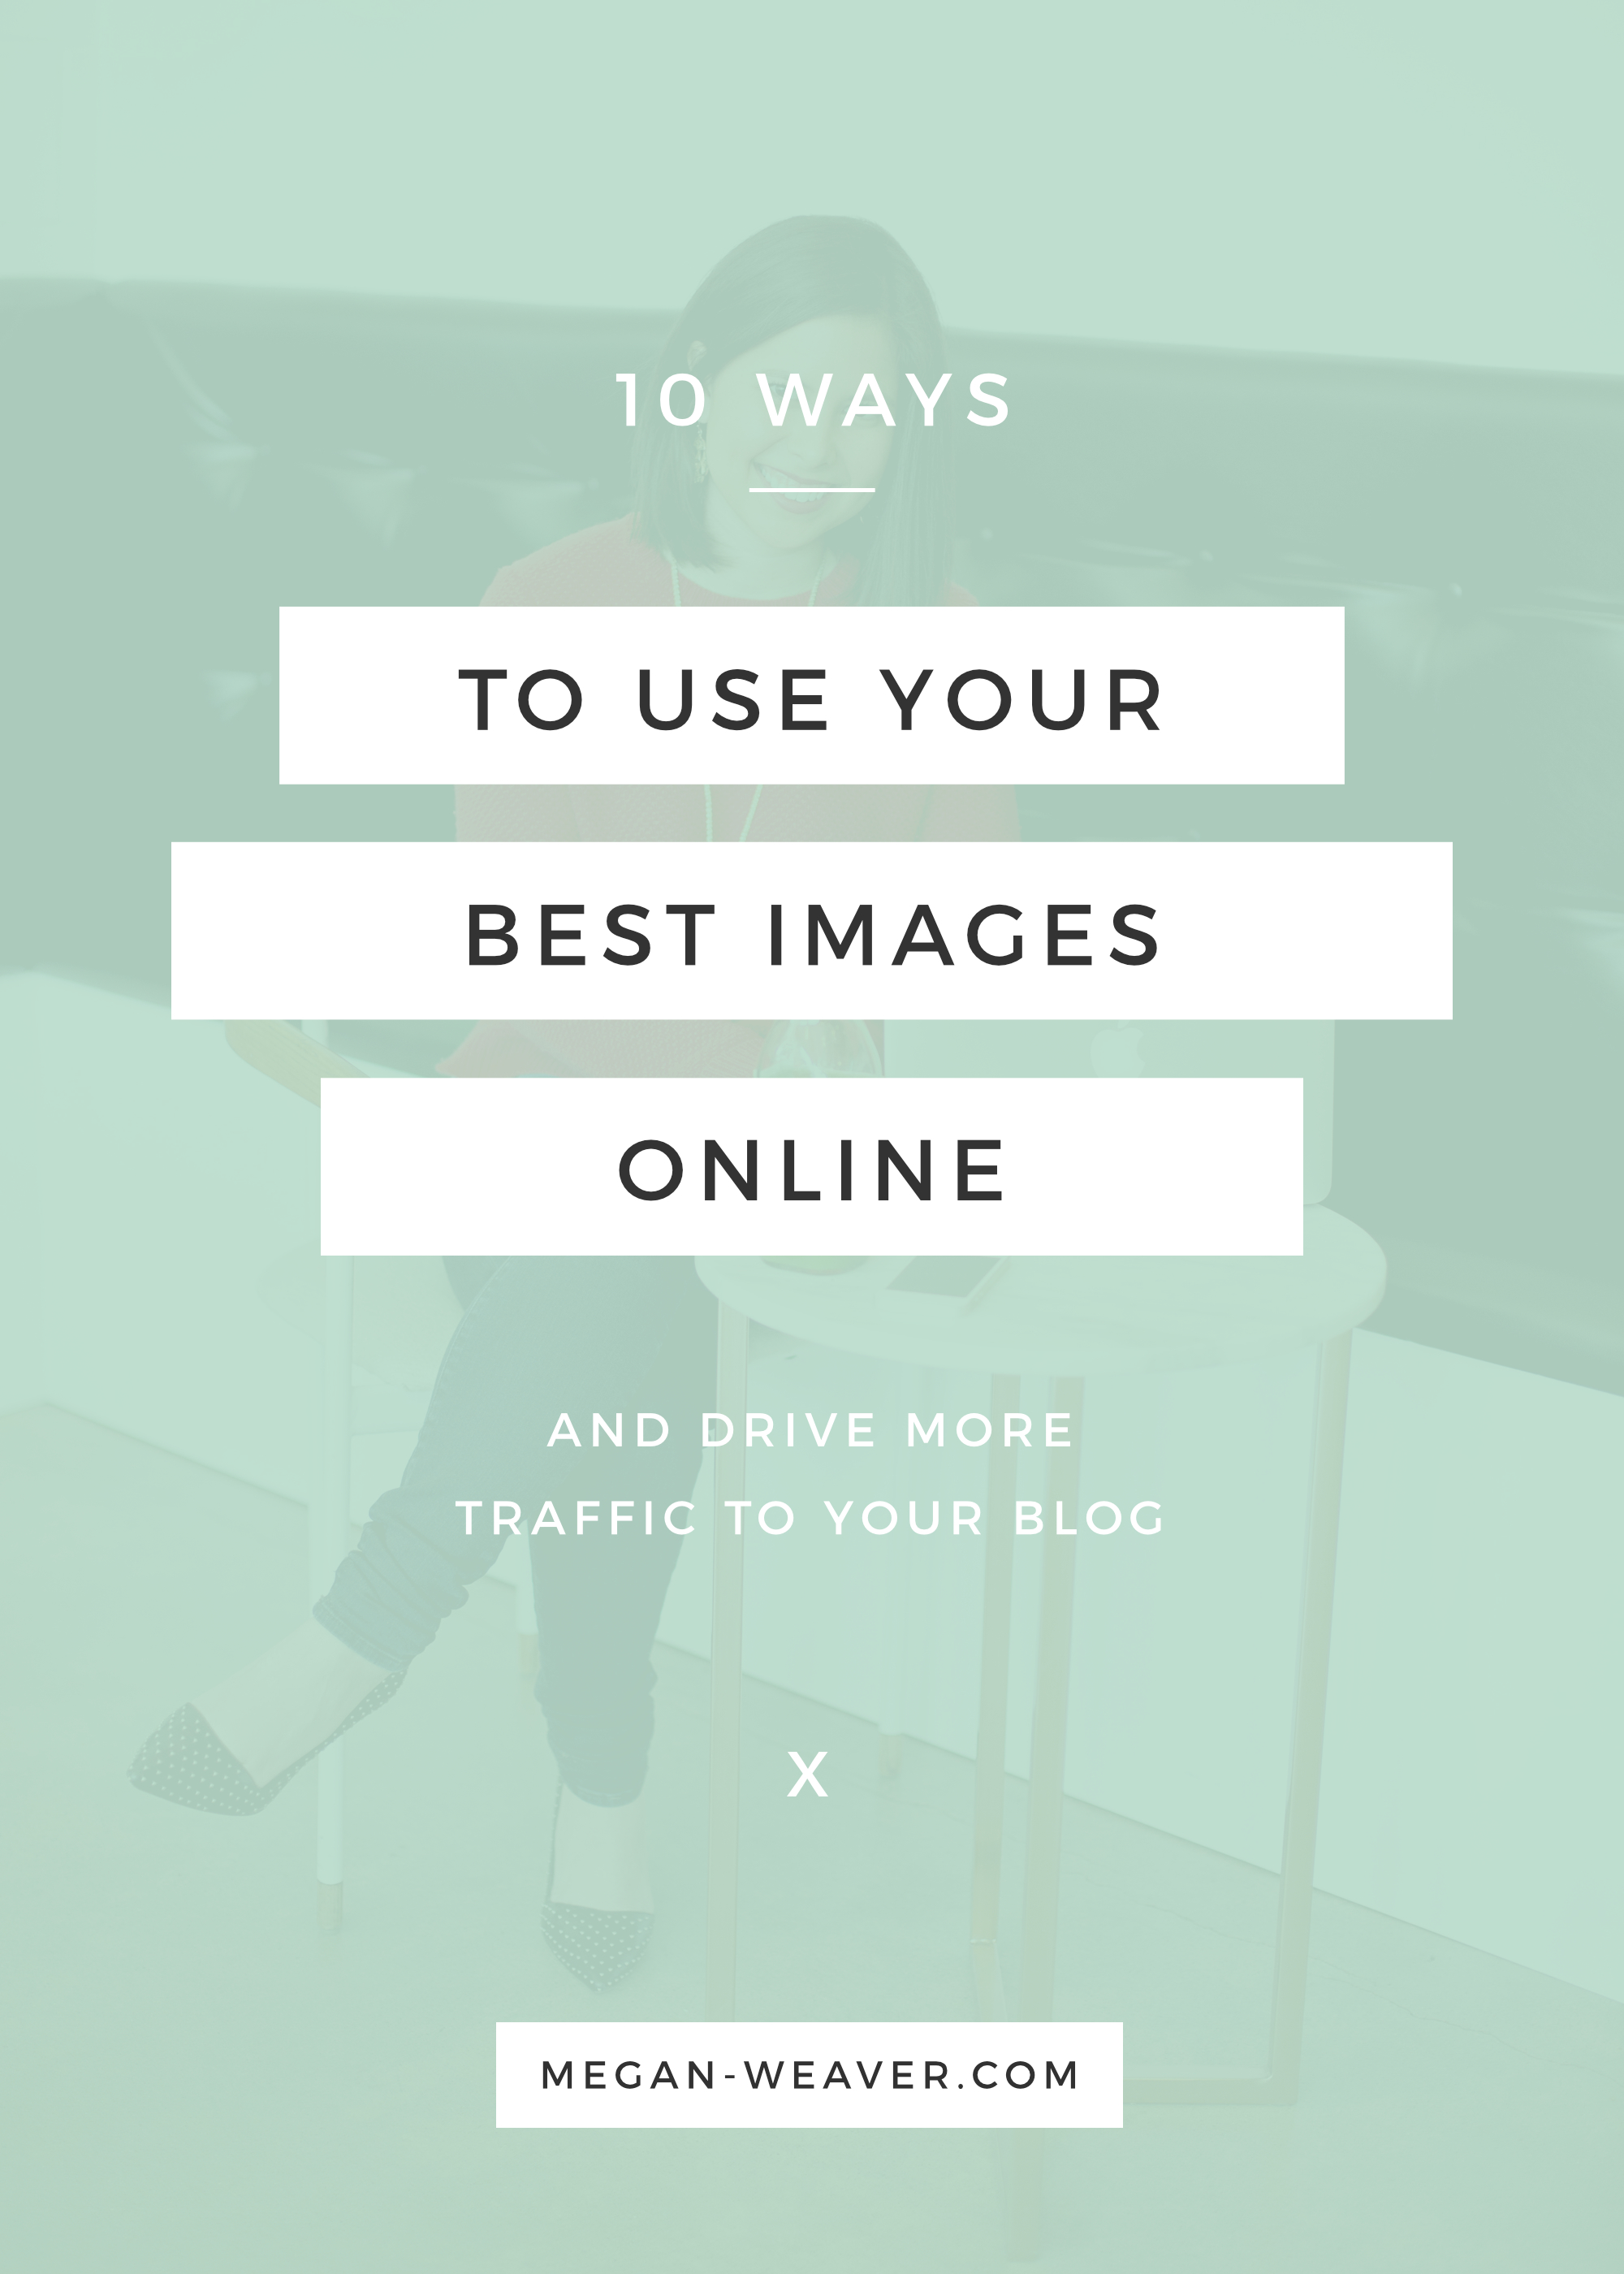 Want to drive more traffic to your blog? The best way to do this is by sharing your fabulous images everywhere you can! Here are a few things you can do before and after your shoots to make sure your images are being used to their fullest potential online.